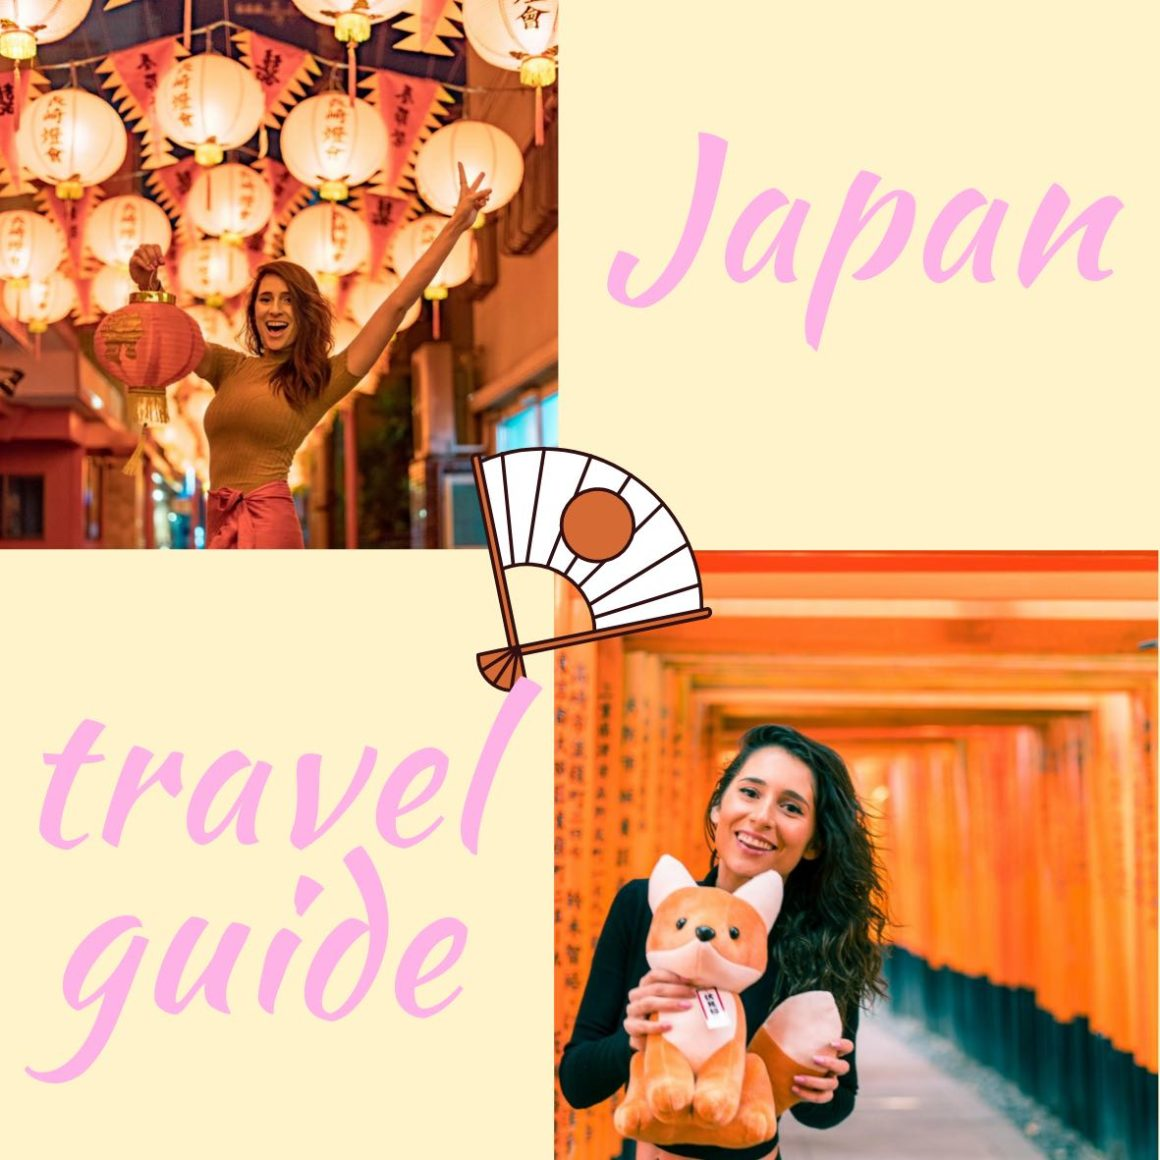 Japan travel guide with alyne